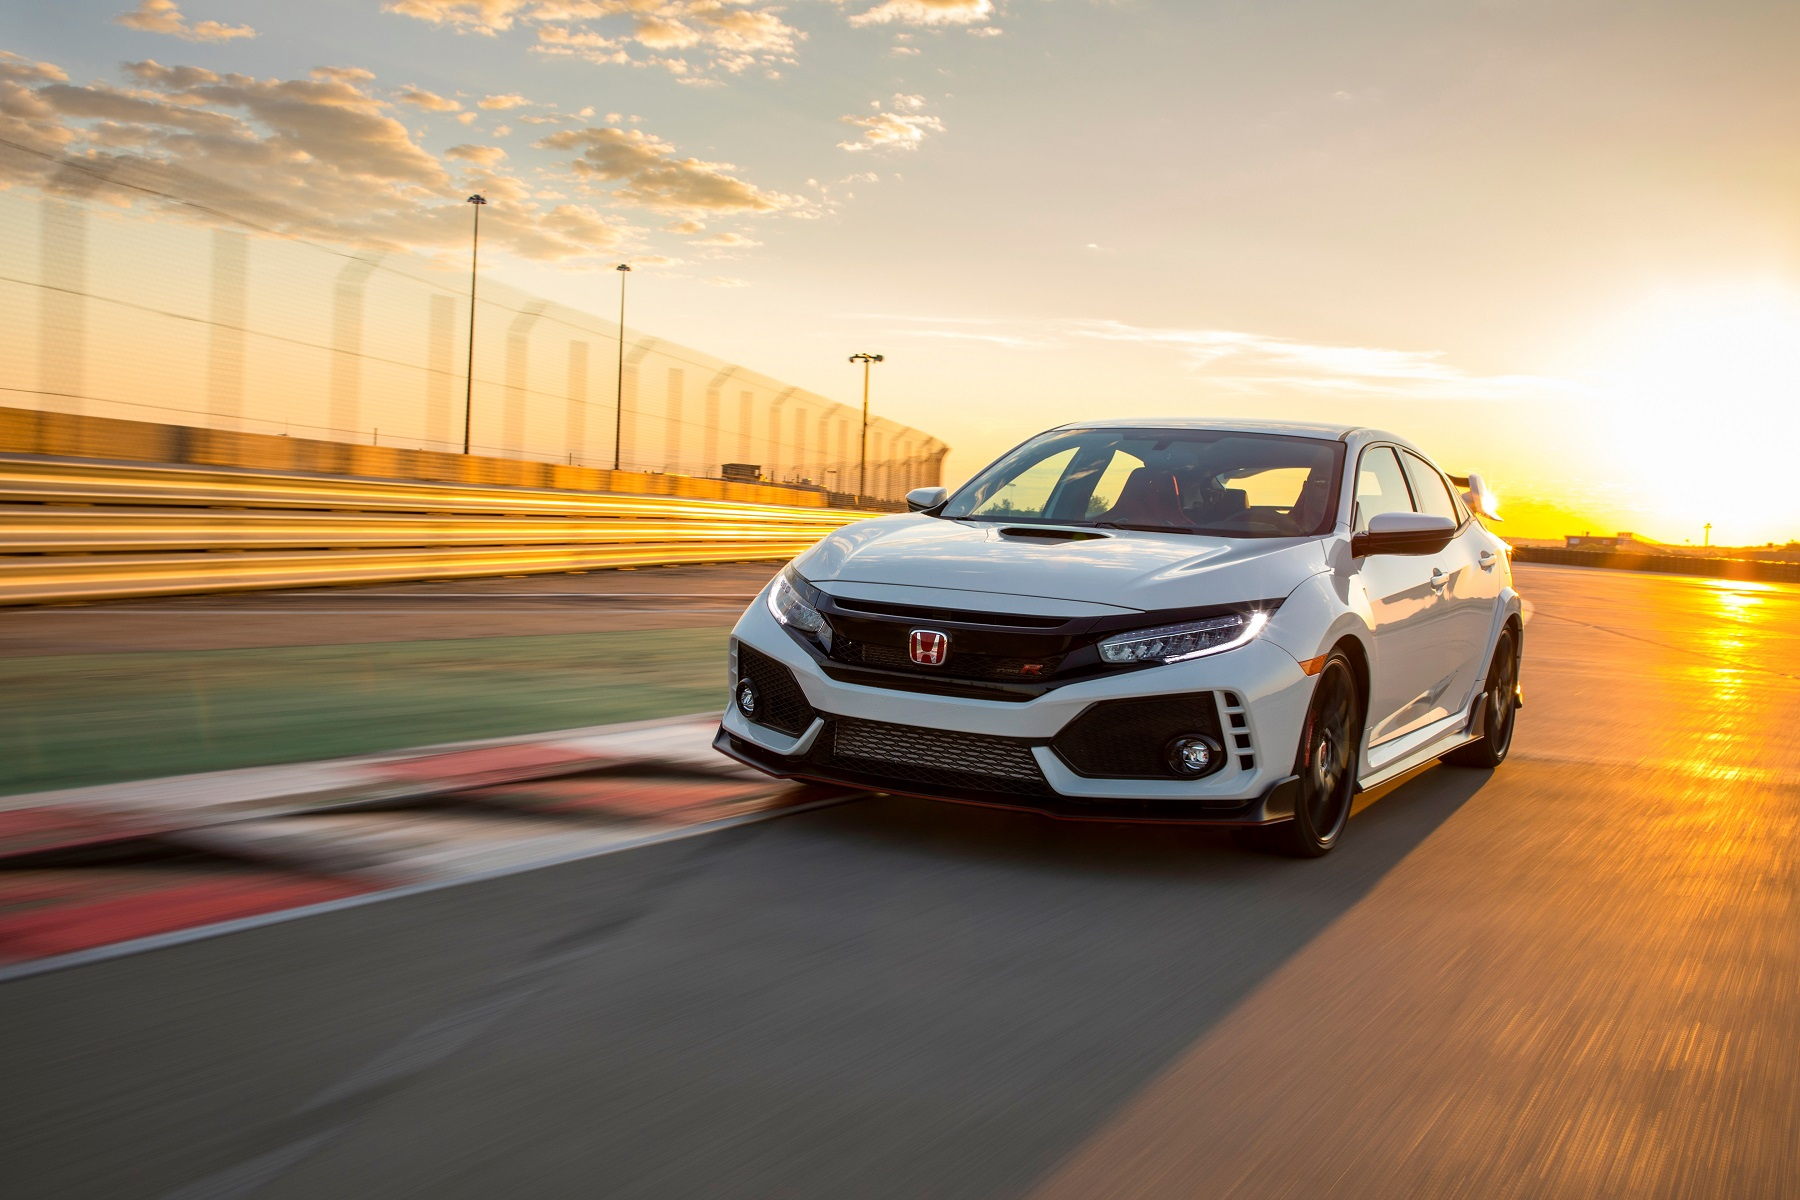 NEW ON WHEELS The Honda Civic Type R is a bargain price performance